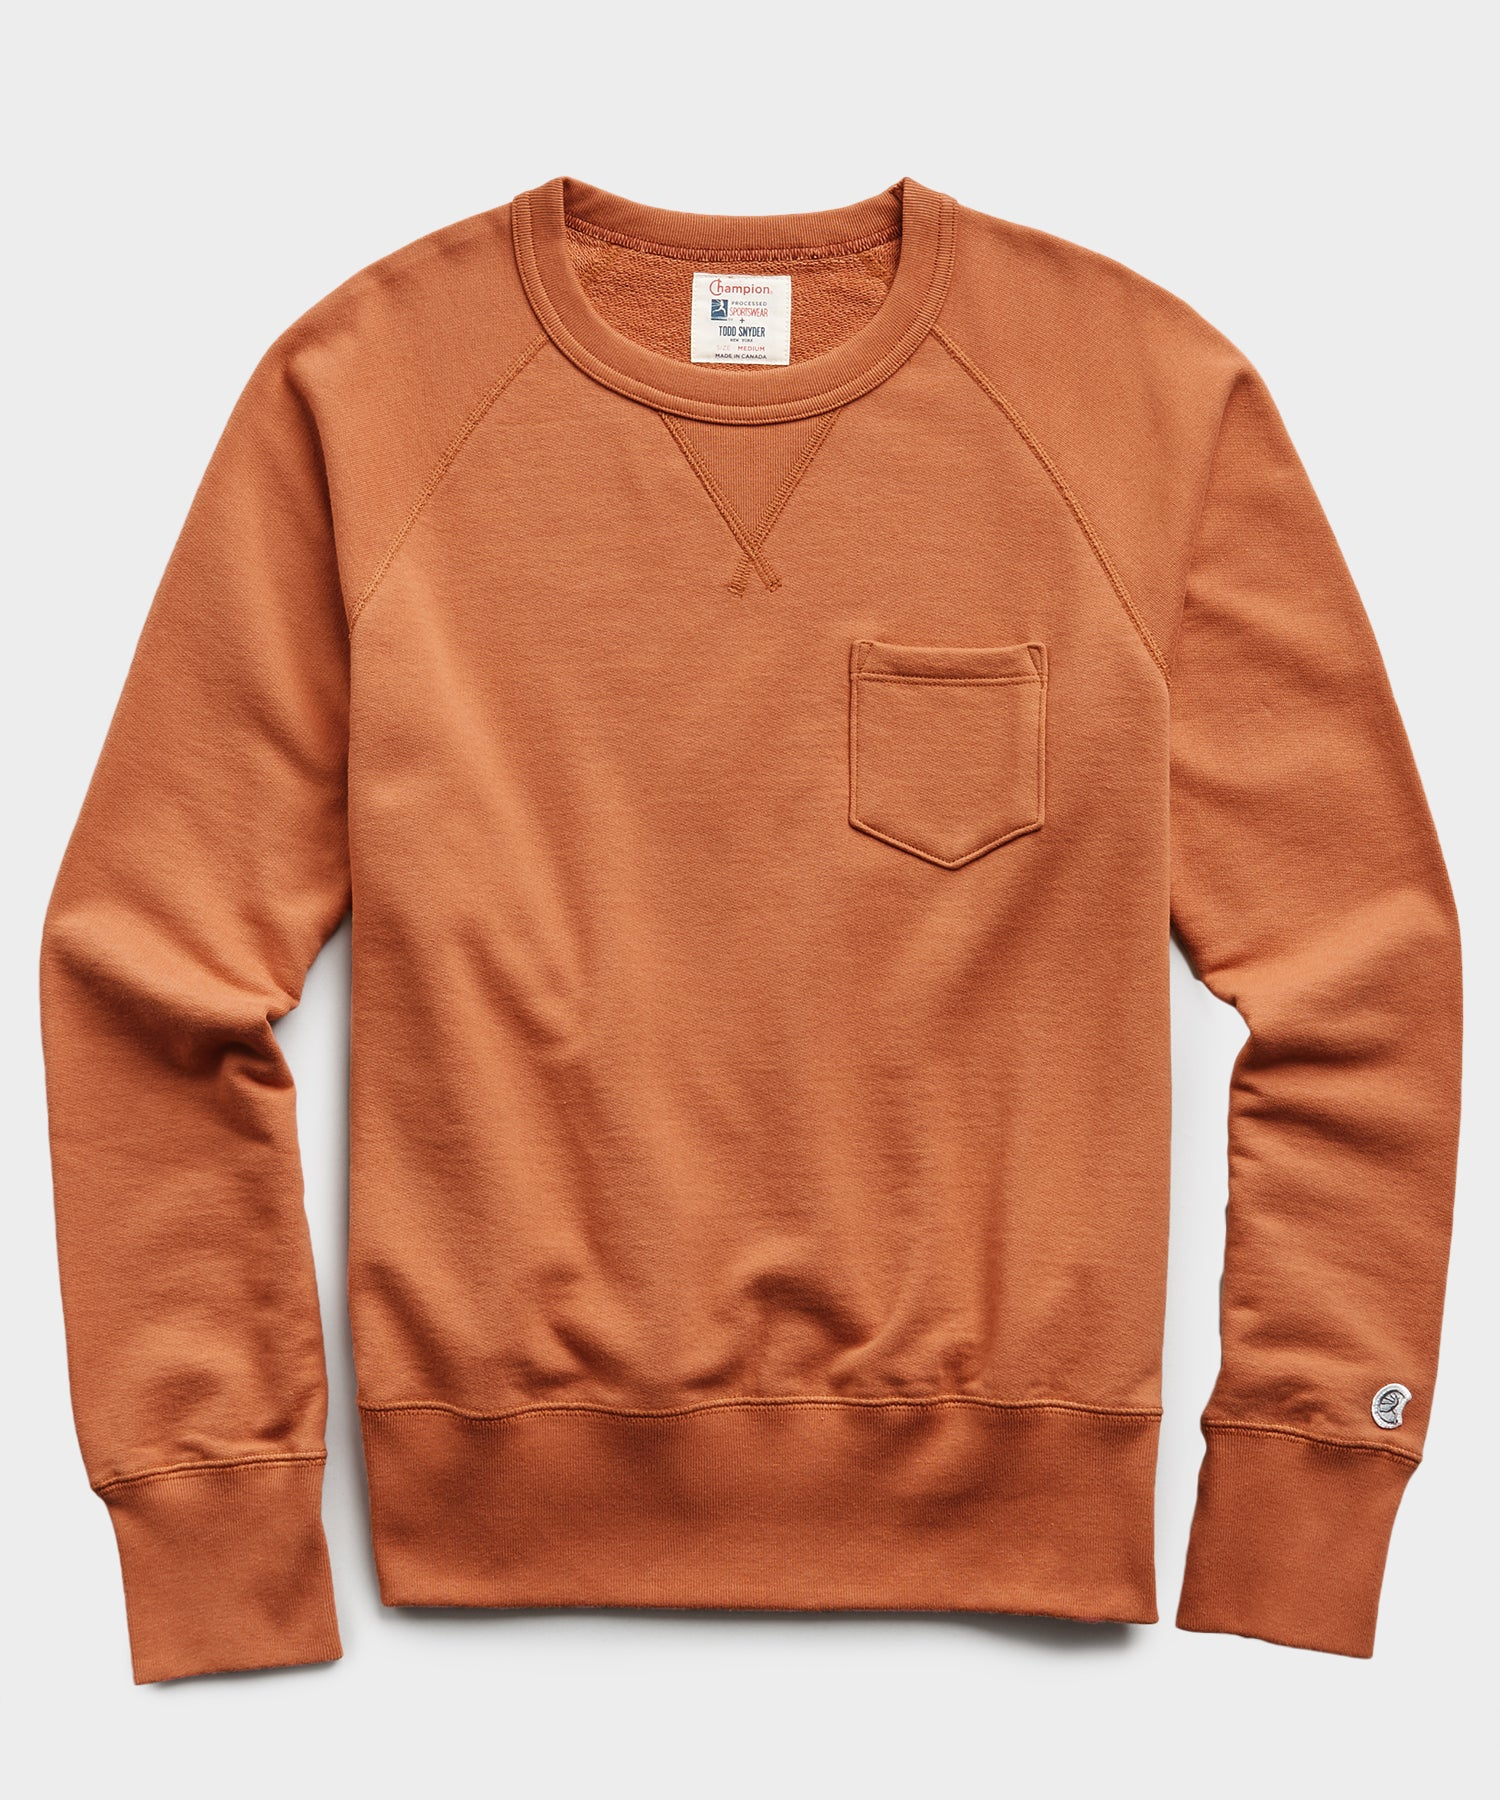 Lightweight Pocket Sweatshirt in Spice